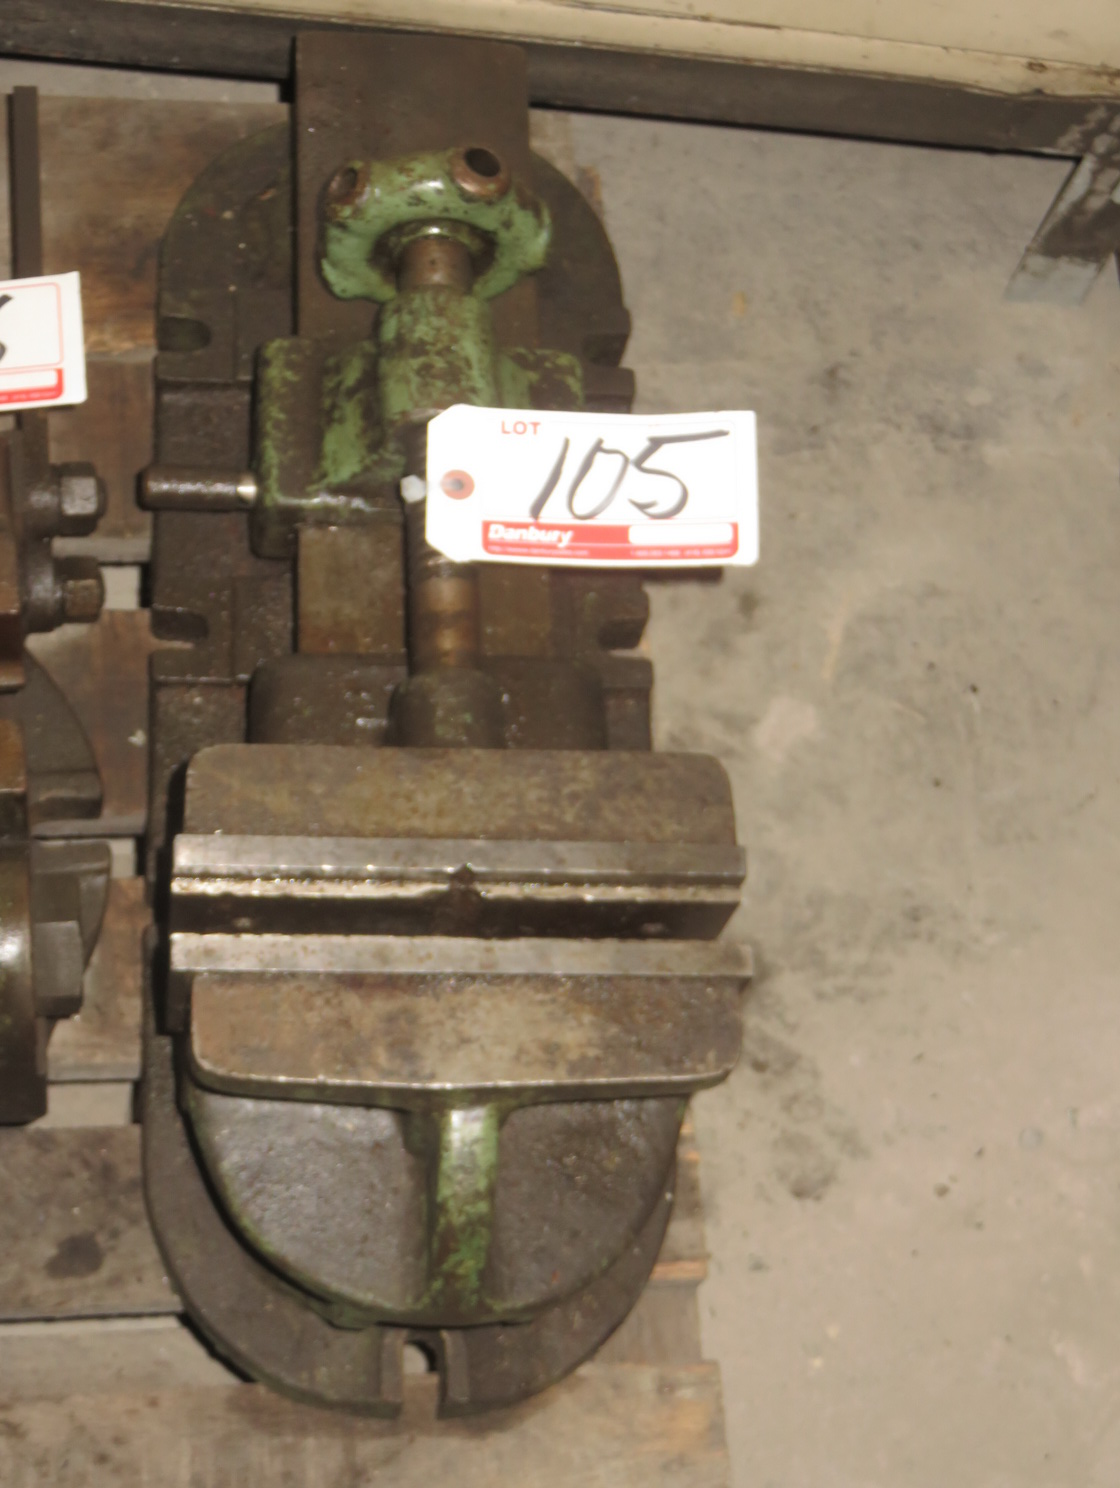 "Lot 105 - UNIVERSAL GREEN 8.5"" W/ MACHINE VISE"